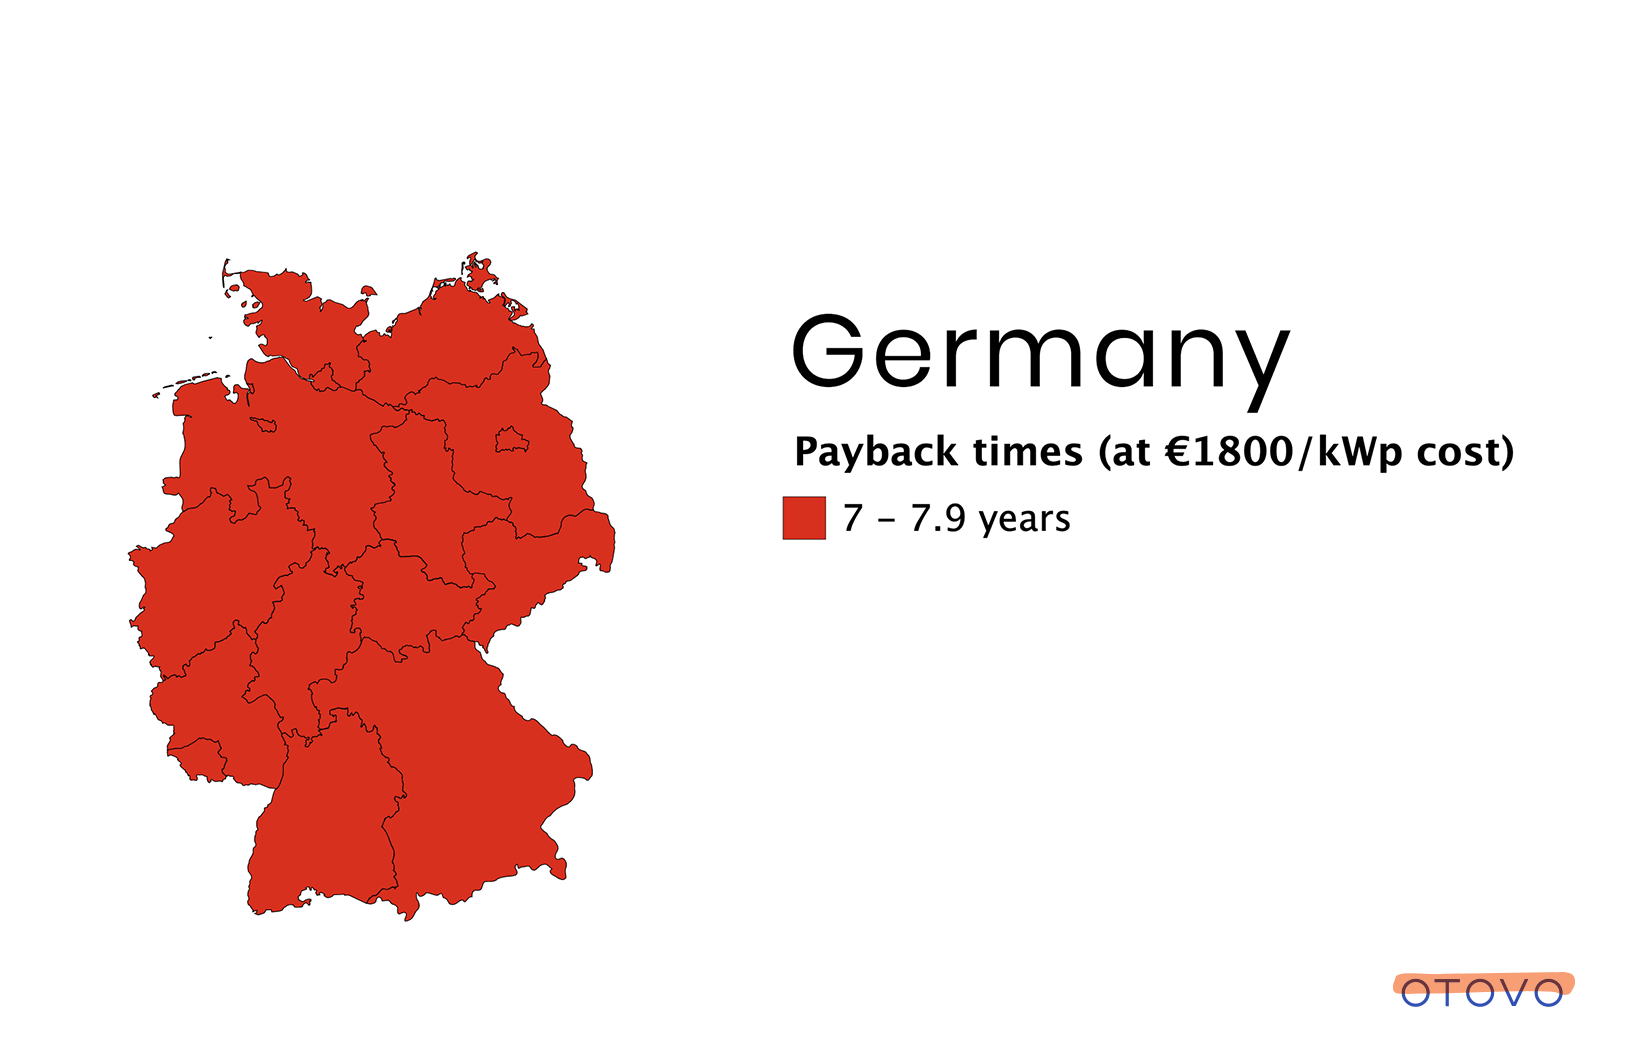 Germany has been the European solar energy leader so far, with the highest capacity installed.